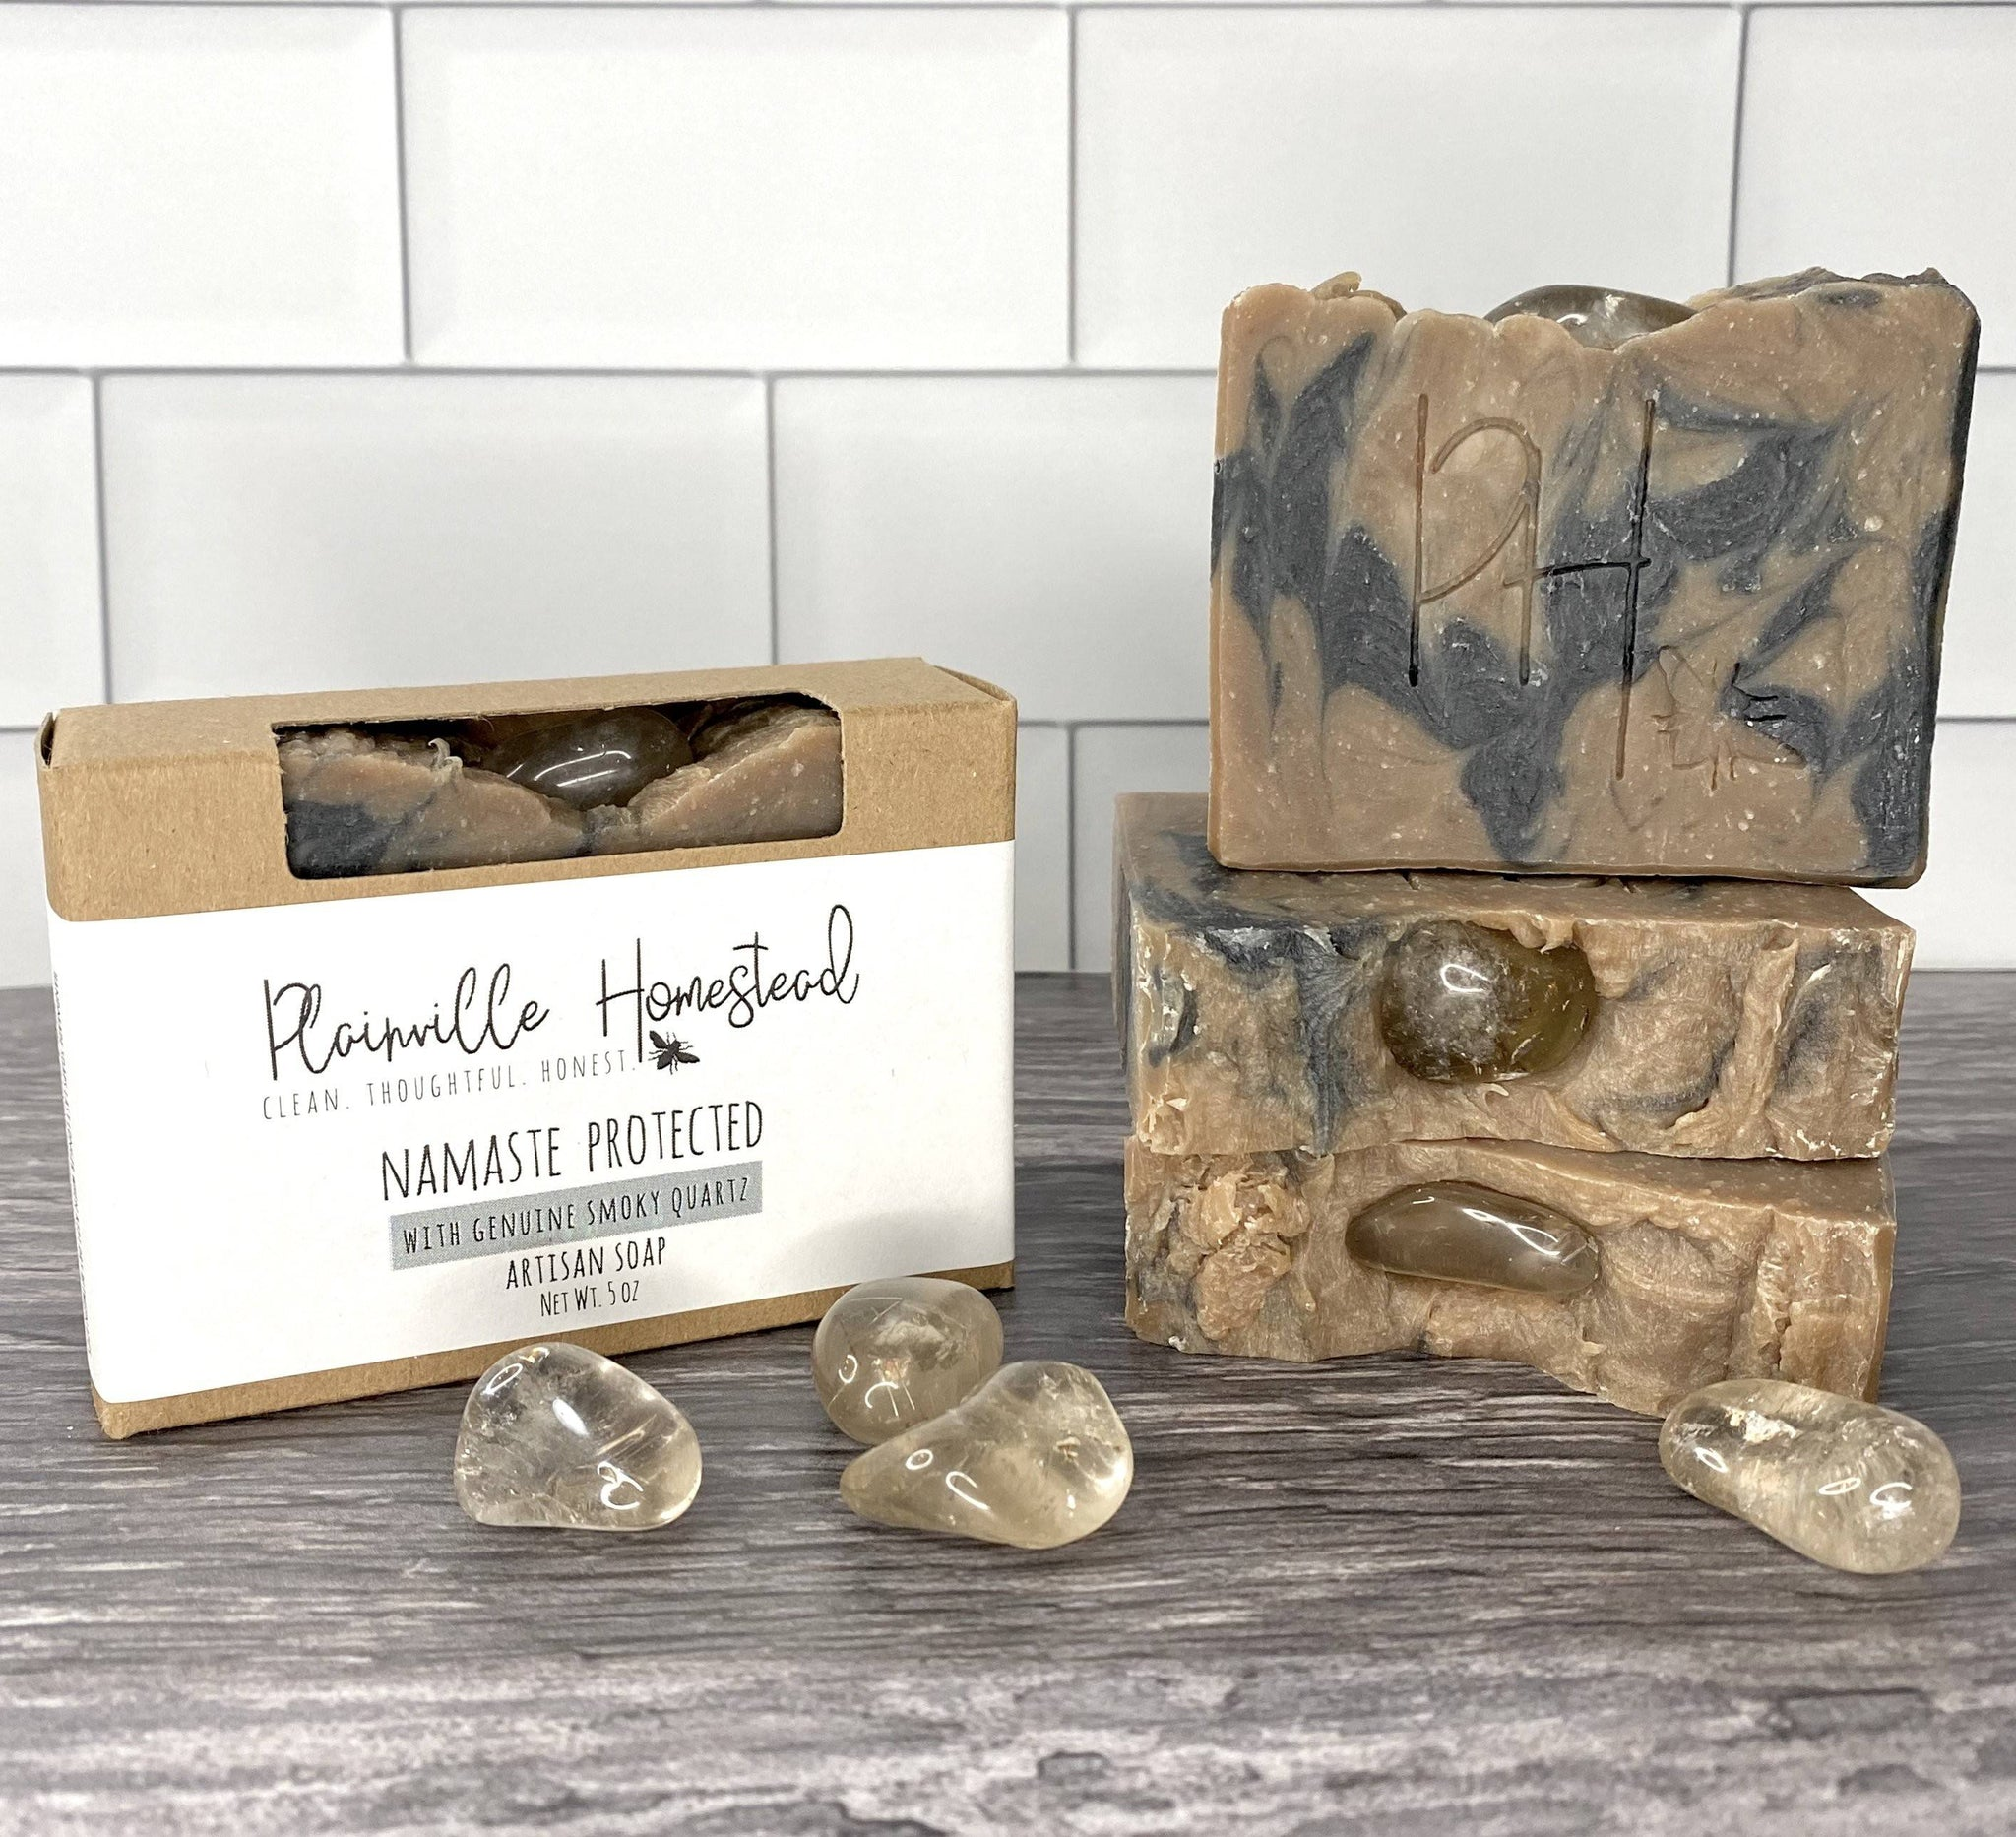 Namaste Protected Artisan Soap | Genuine Smoky Quartz